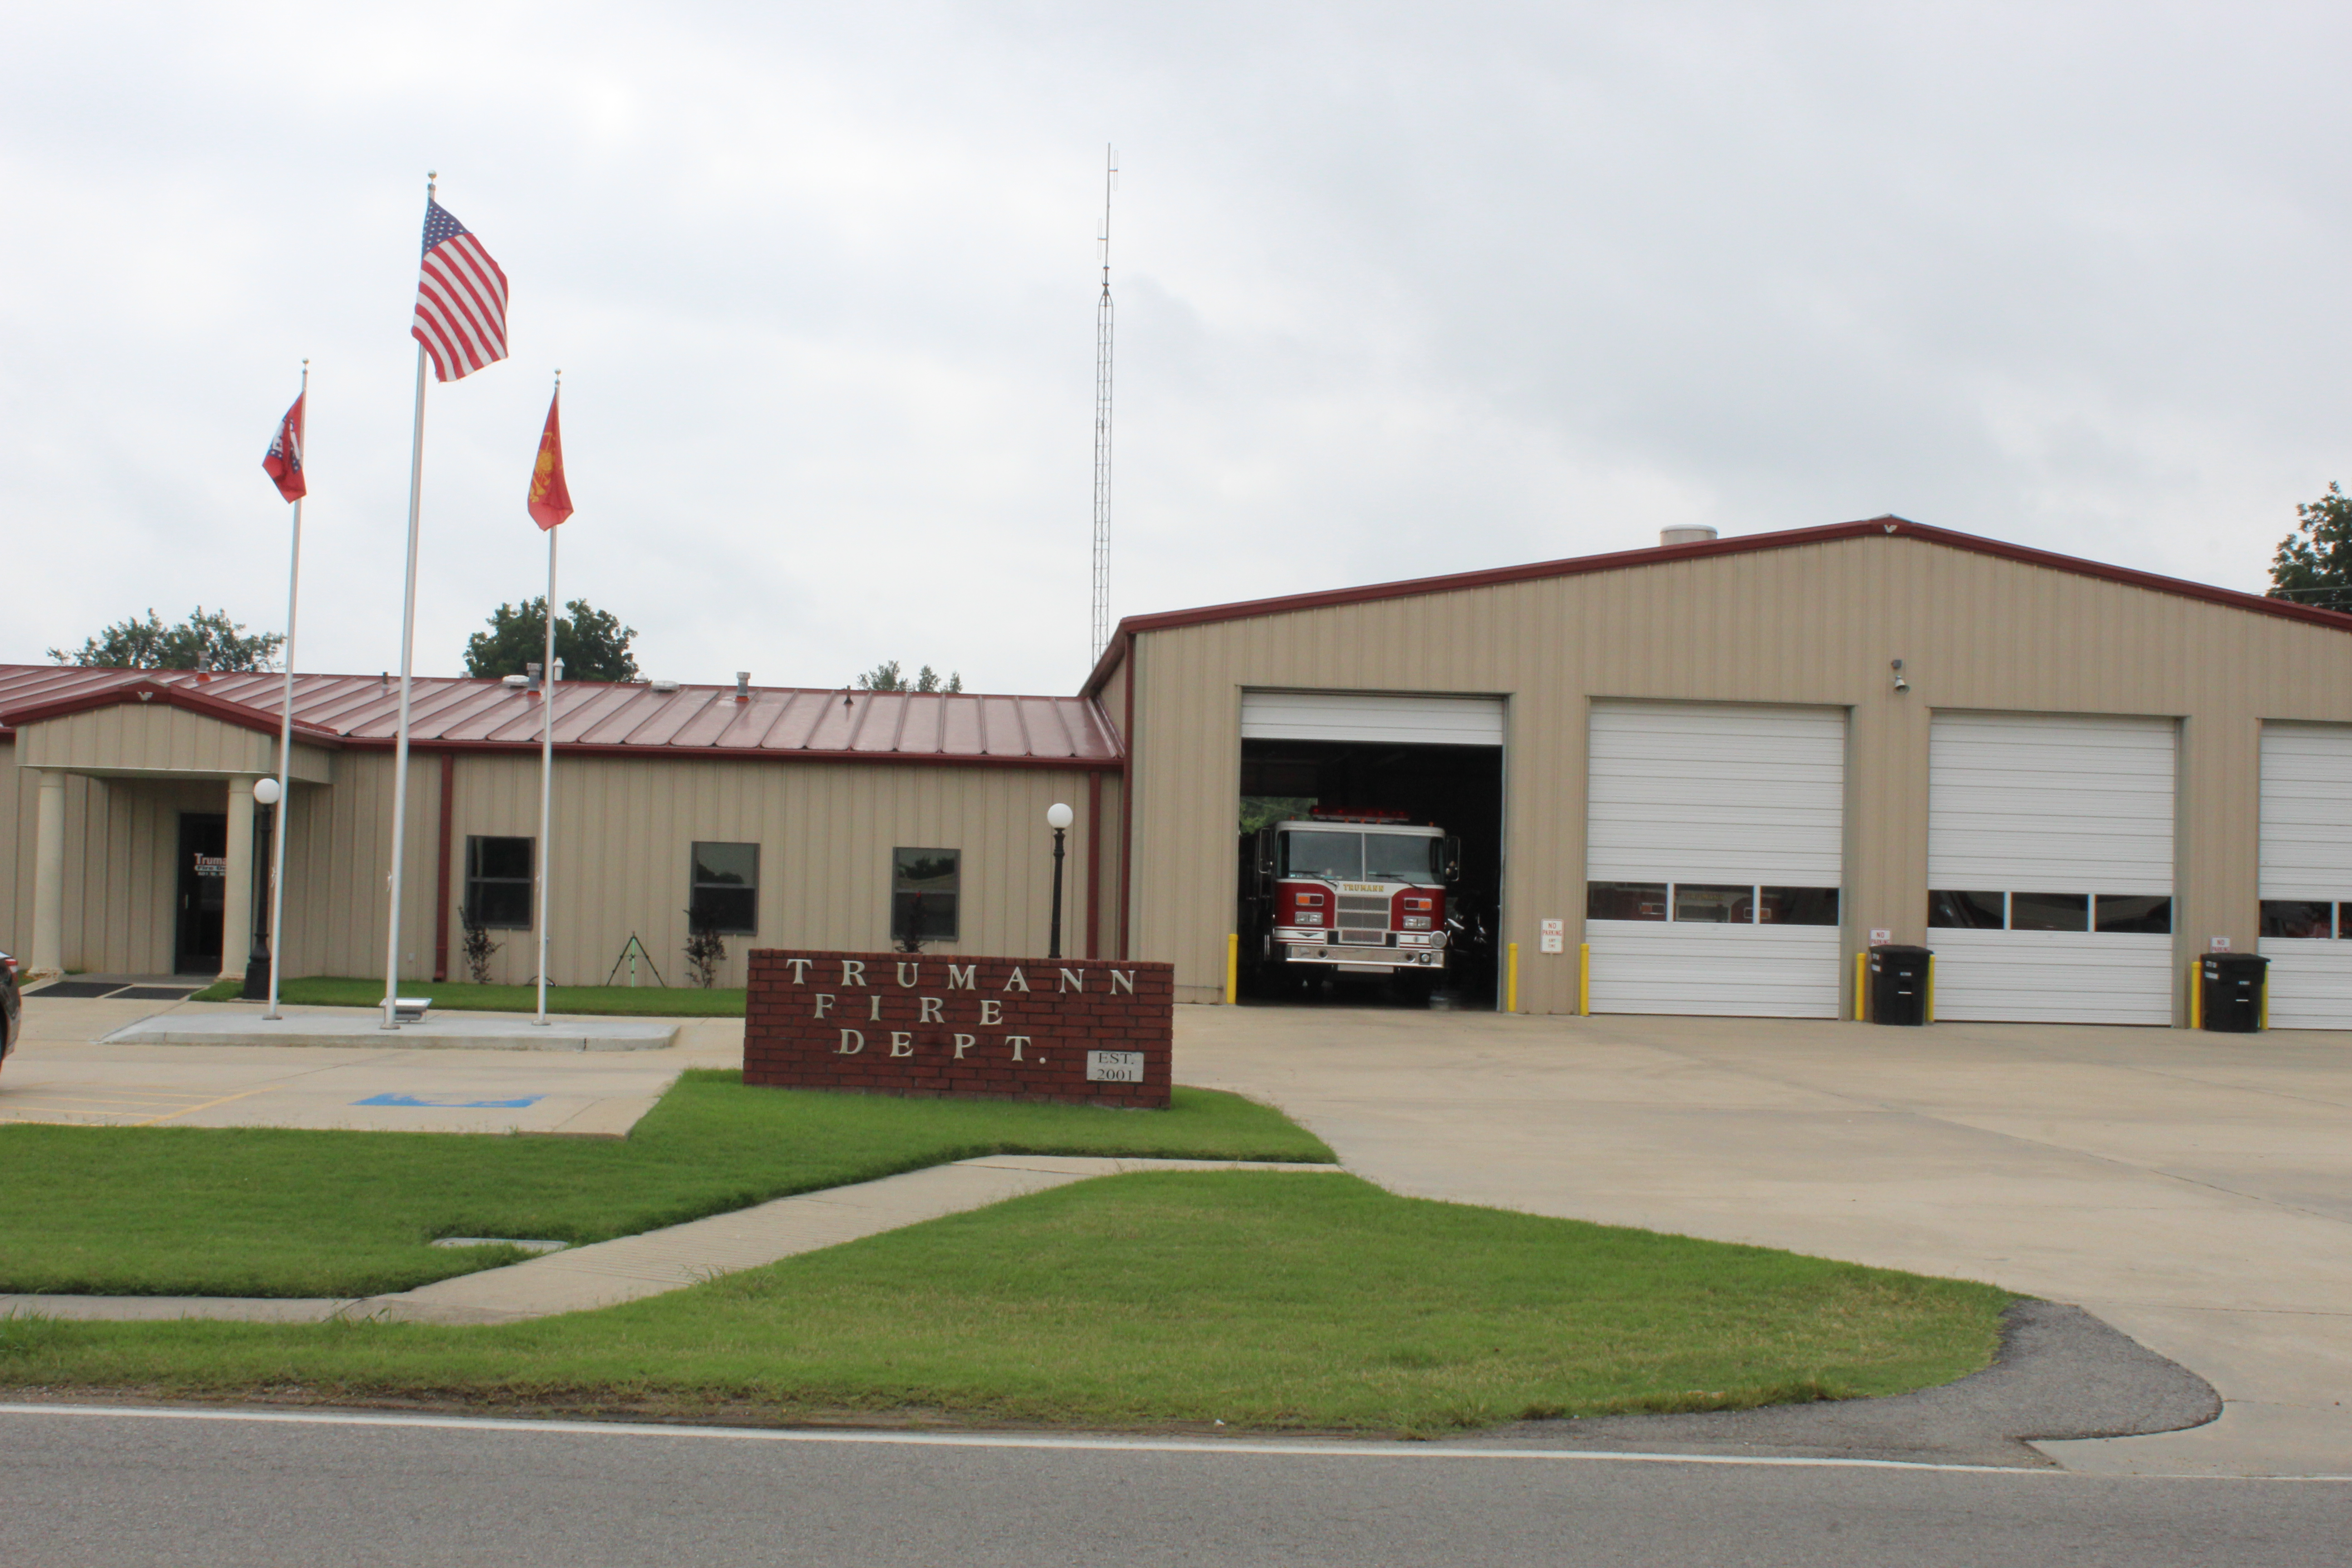 Picture of the front of the Trumann Fire Department on Main Street